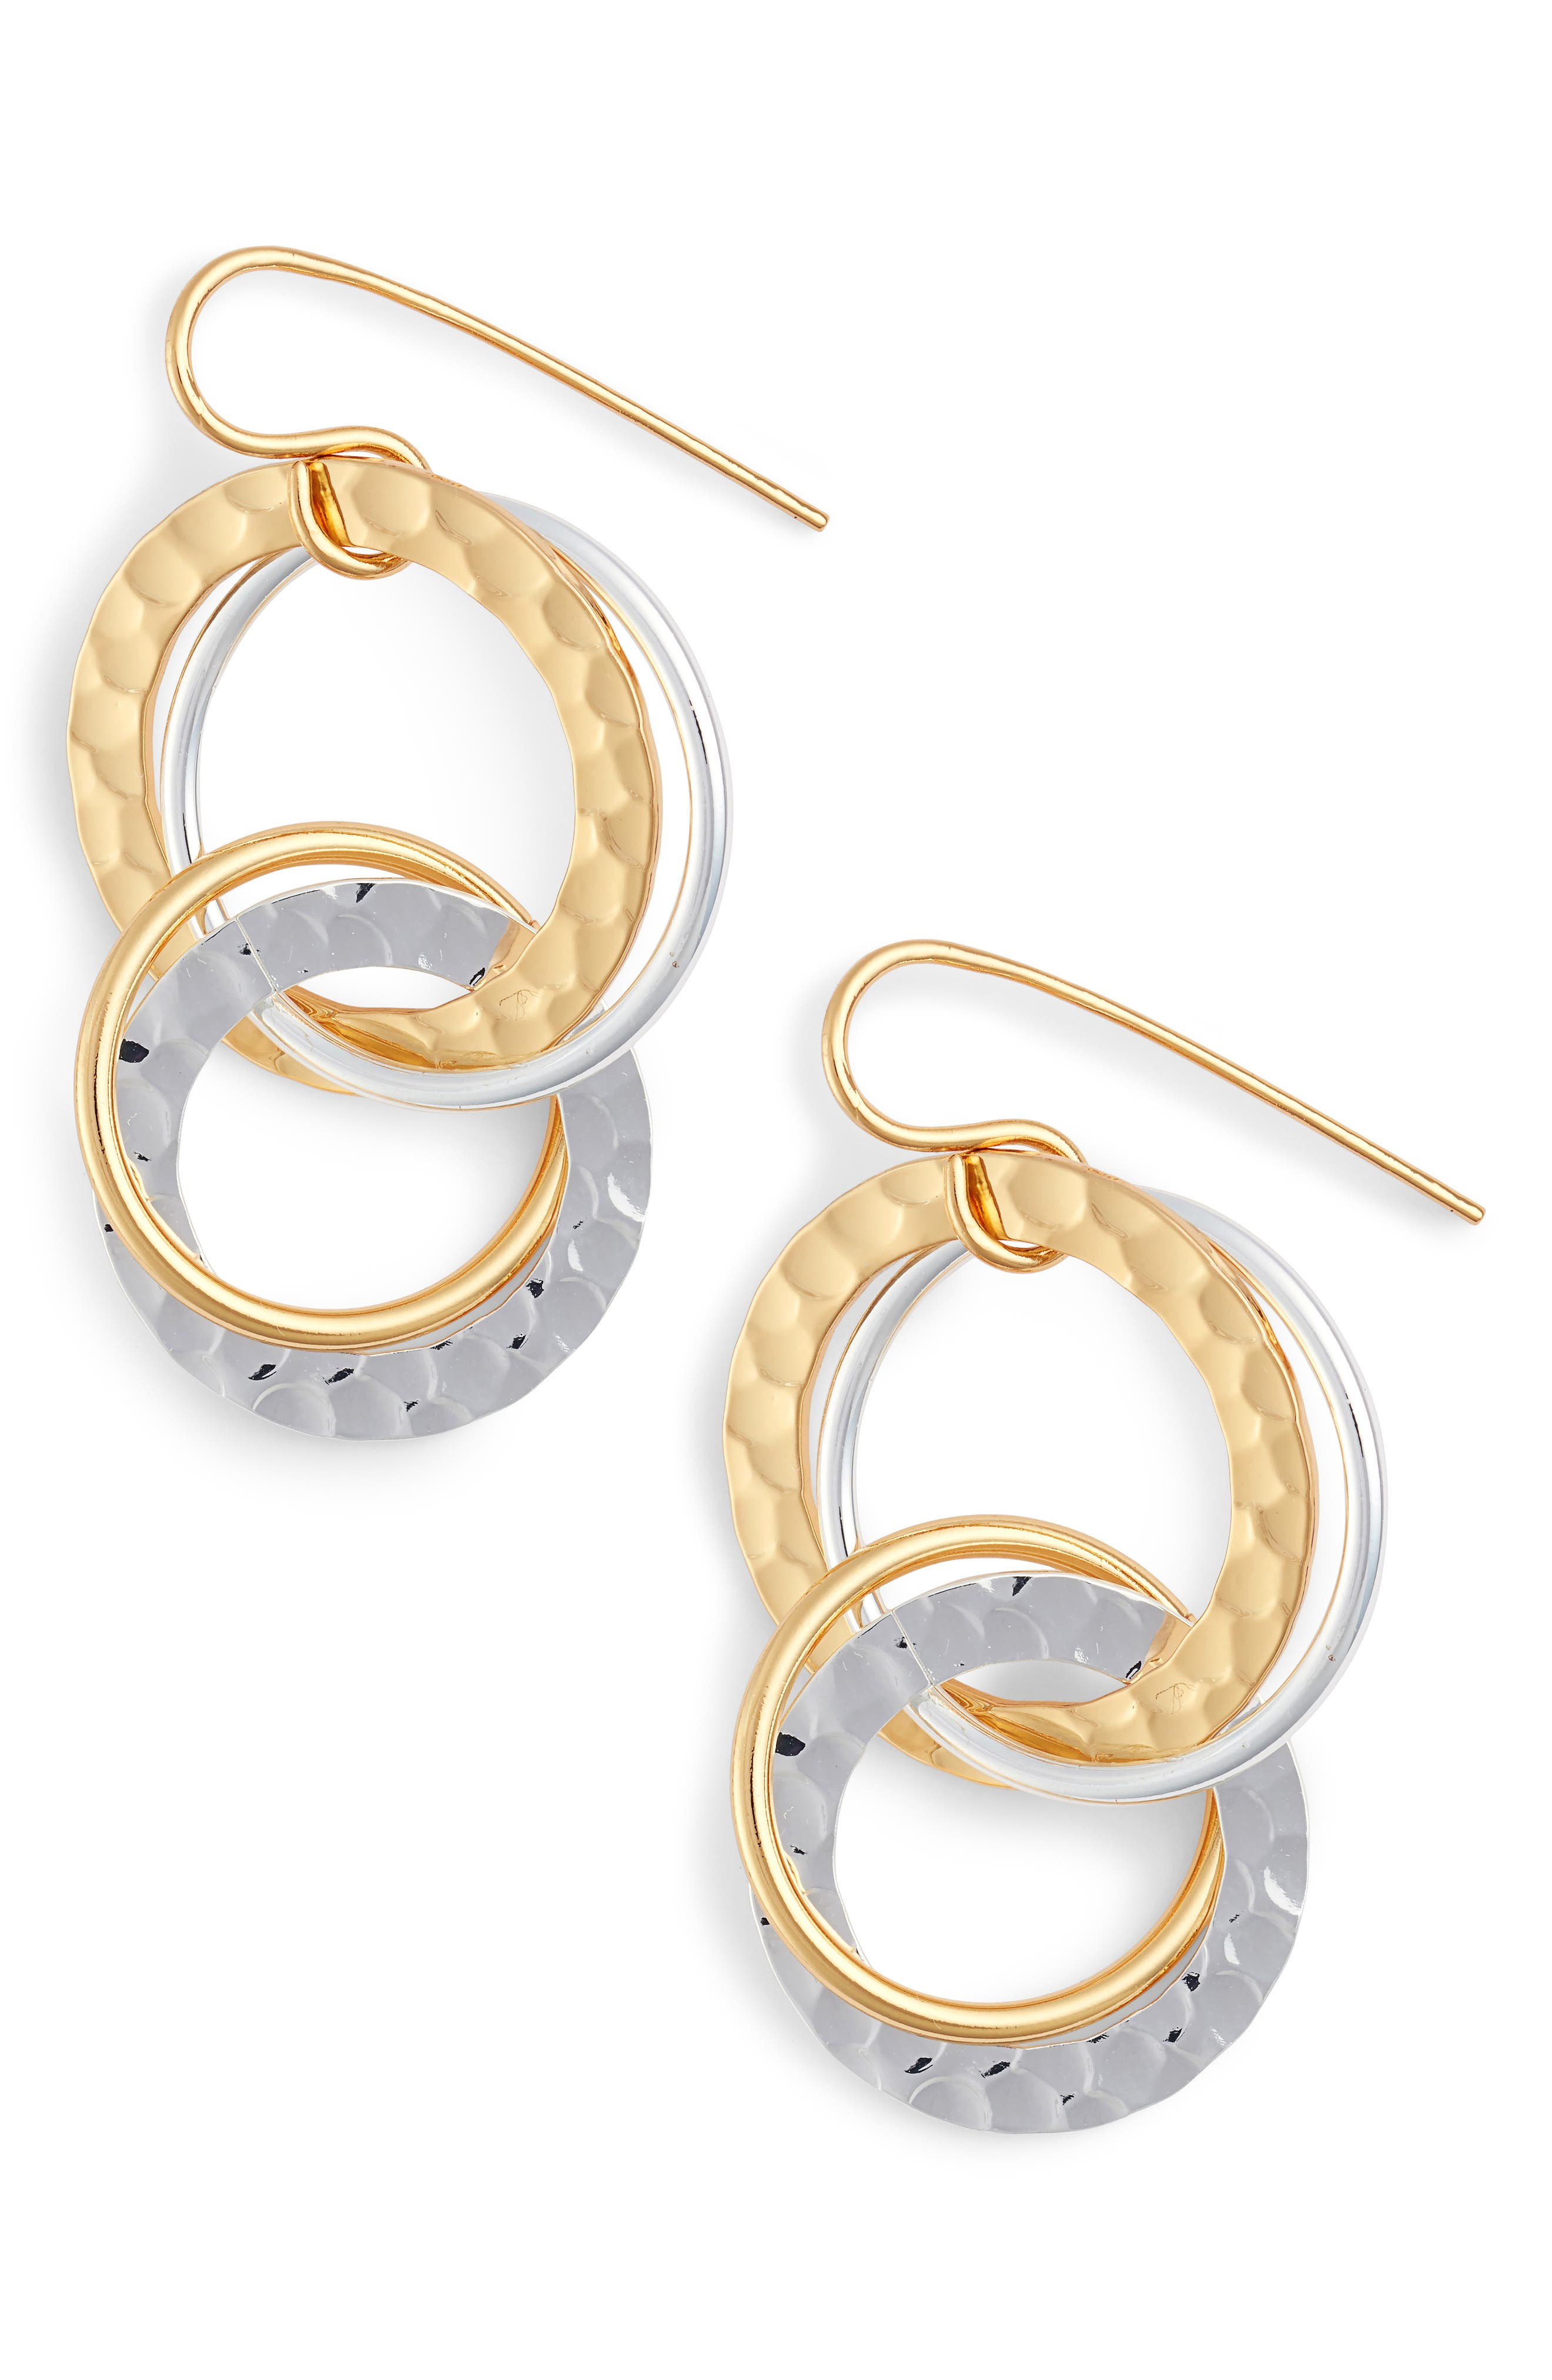 Multi Ring Earrings,                         Main,                         color, Gold/ Silver